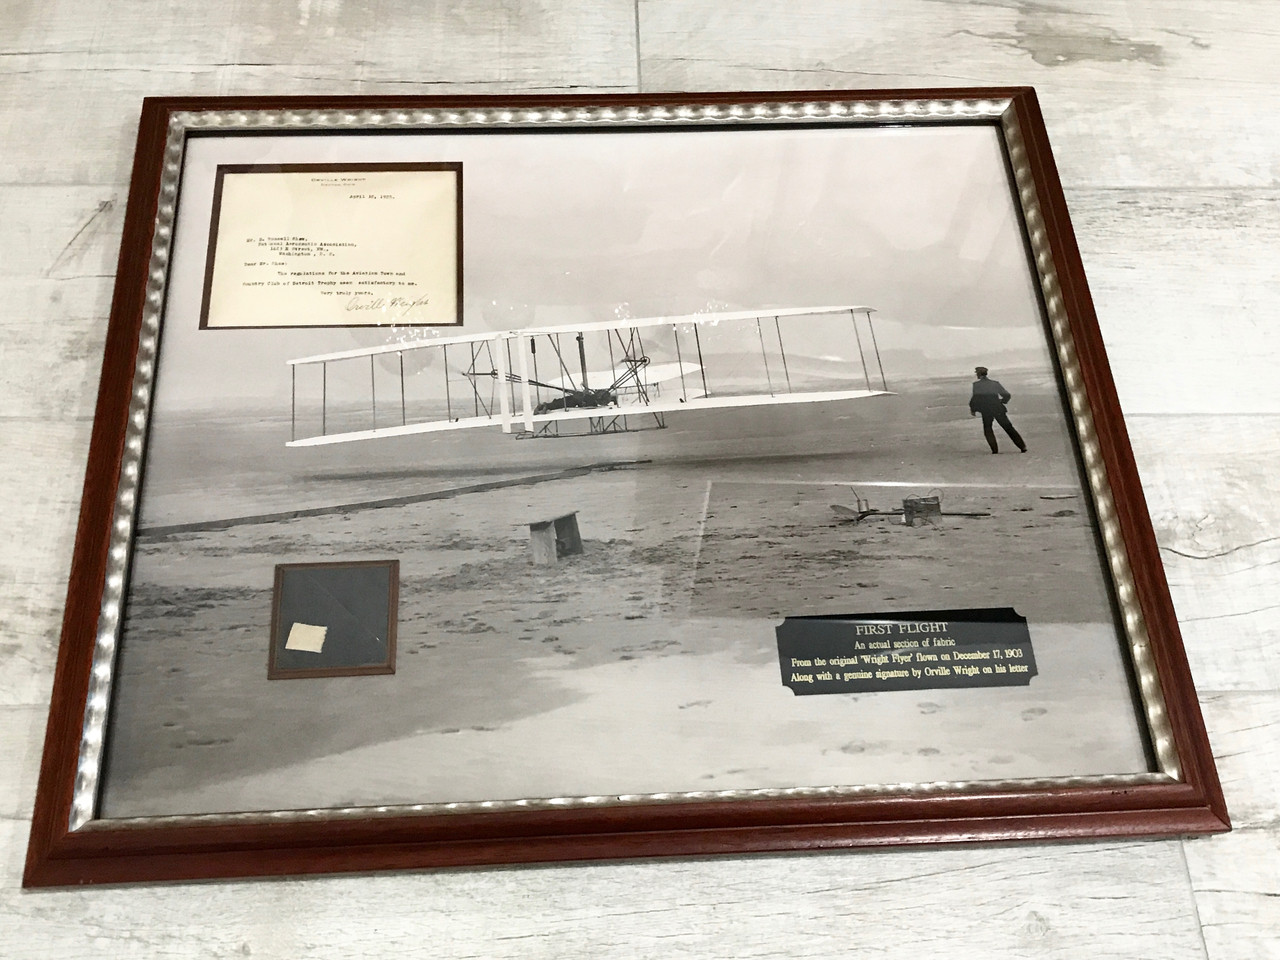 Liquidation World Flyer Wright Brothers Flyer Swatch Signed Letter Framed Complete Documentation